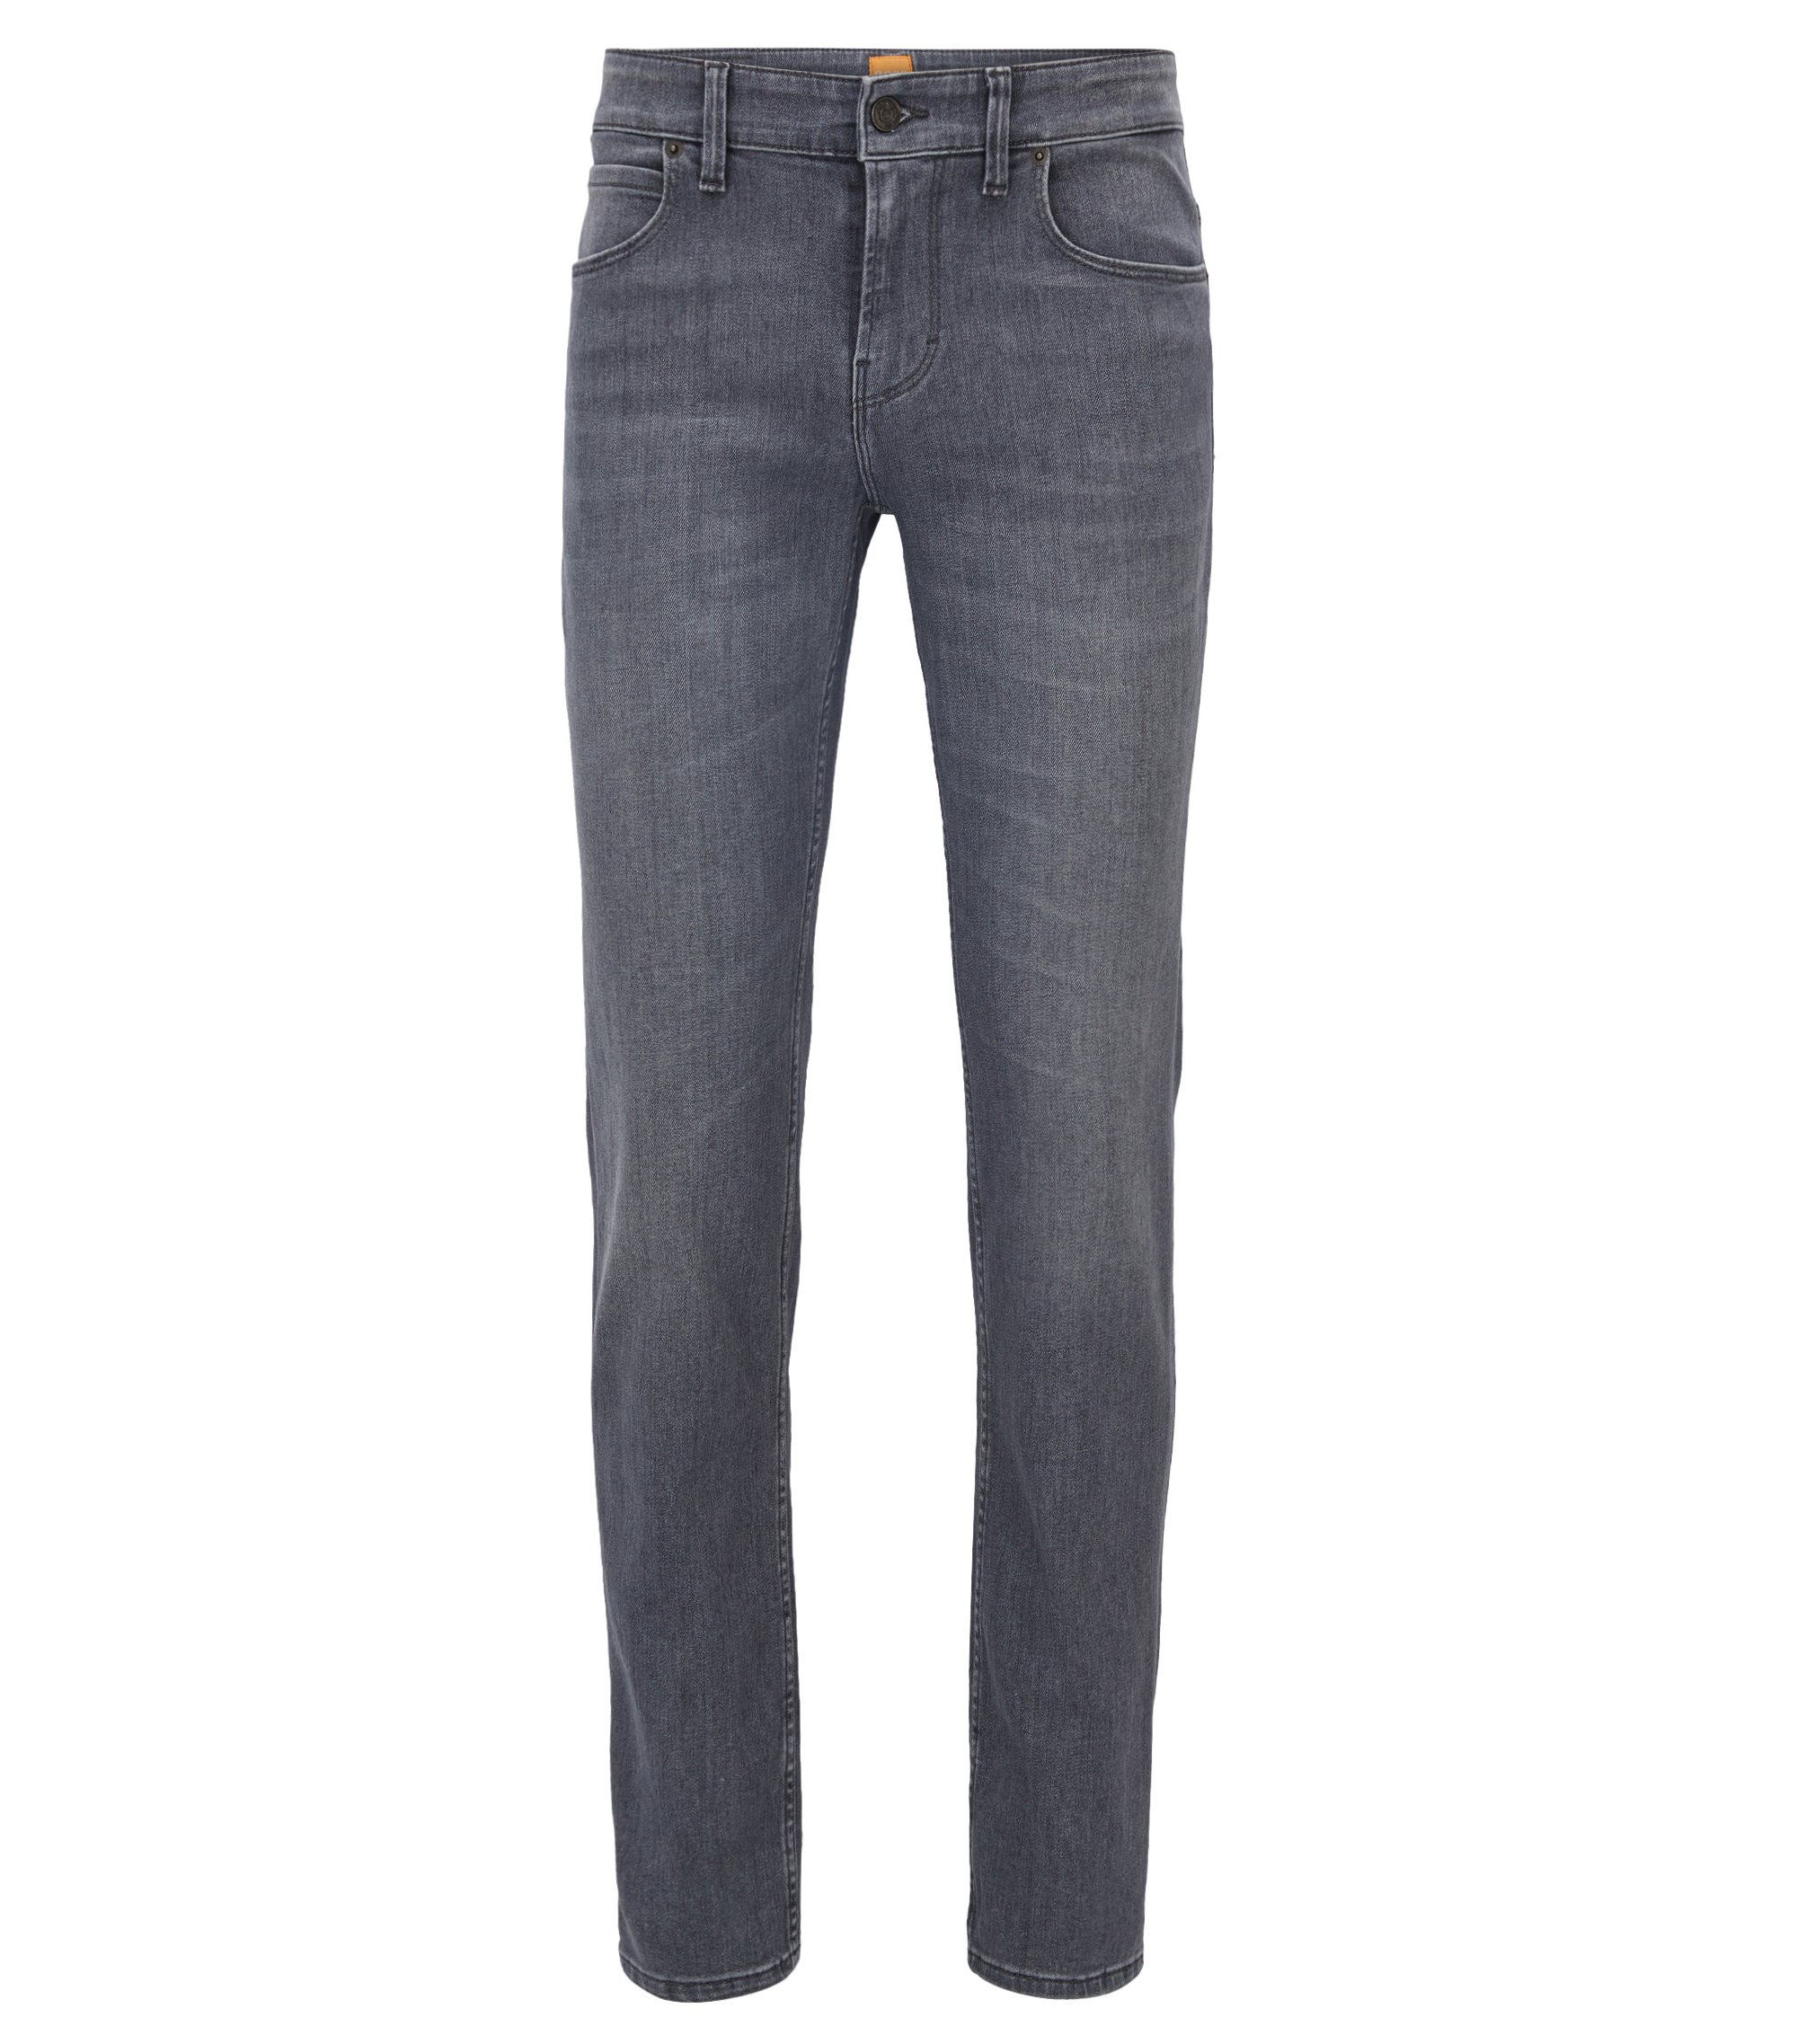 Jeans Slim Fit en denim stretch délavé, Anthracite